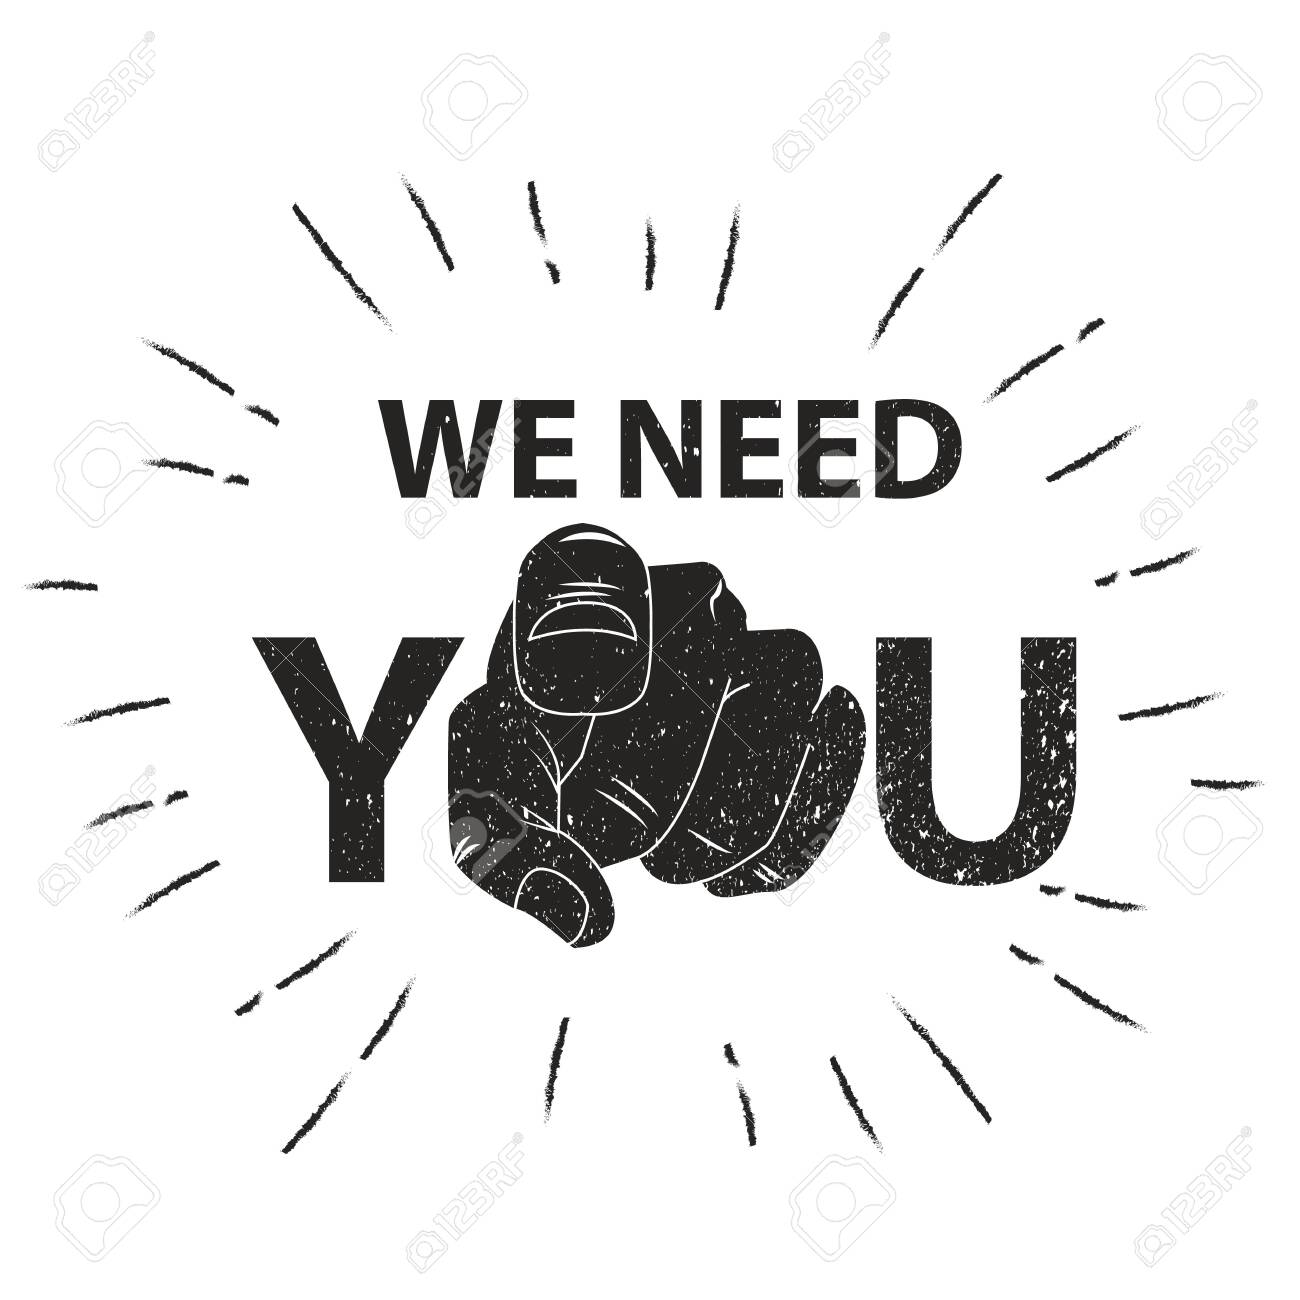 We need you concept vector illustration. Retro human hand with the finger pointing or gesturing towards you - 124962571